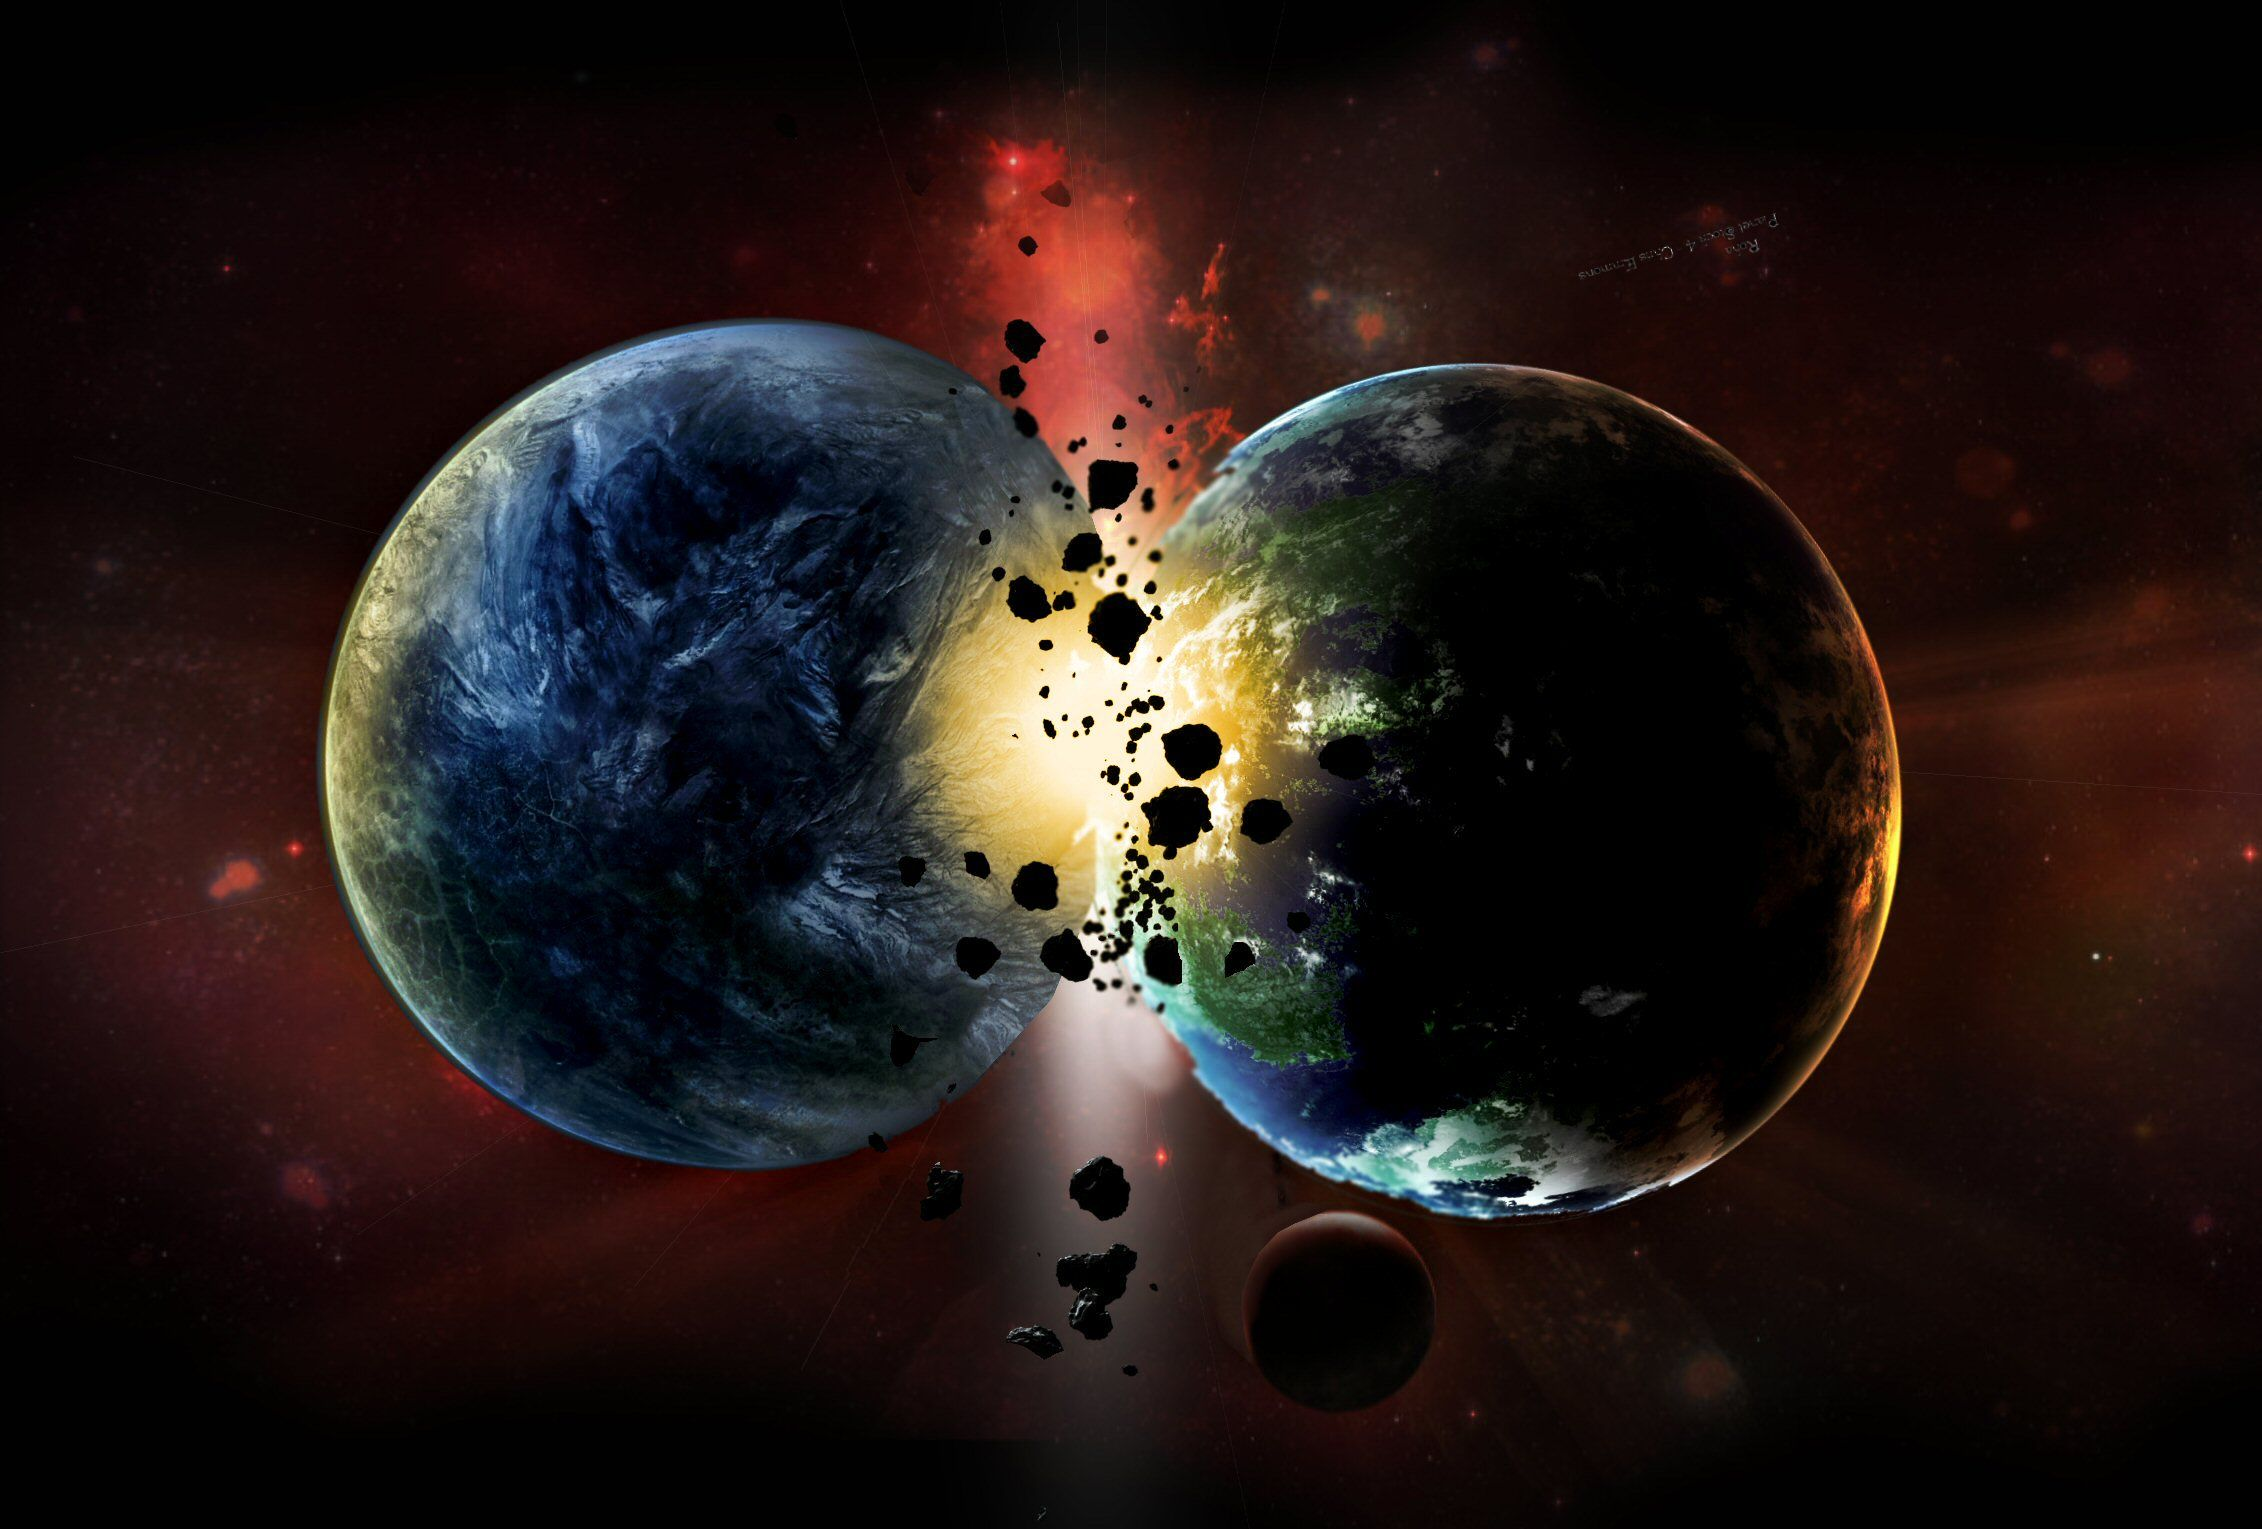 Planets   Planets Collide in an Epic Science Fiction ...